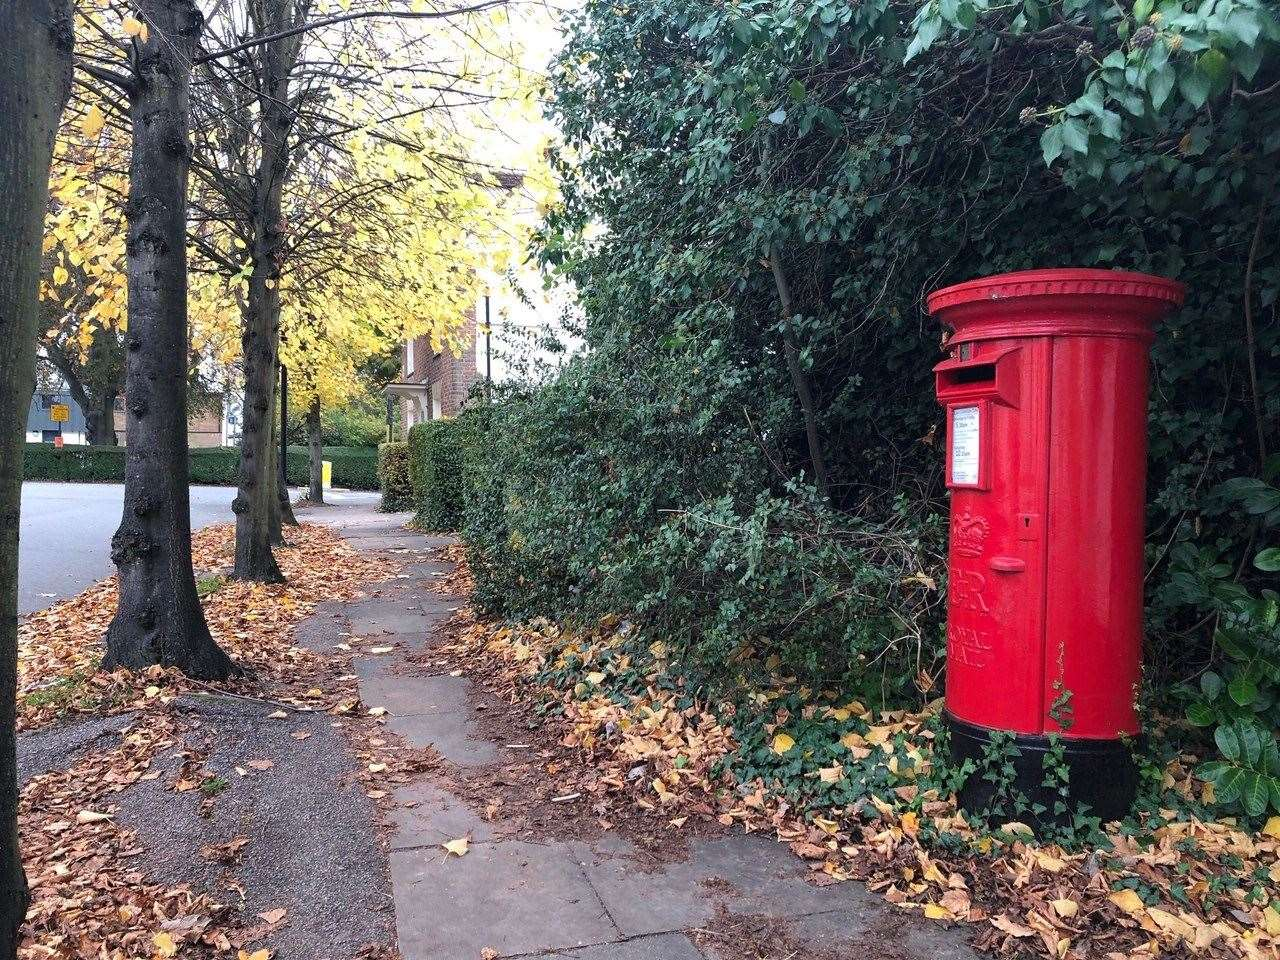 Royal Mail says there is another postbox about 500 yards' walk away in the town centre